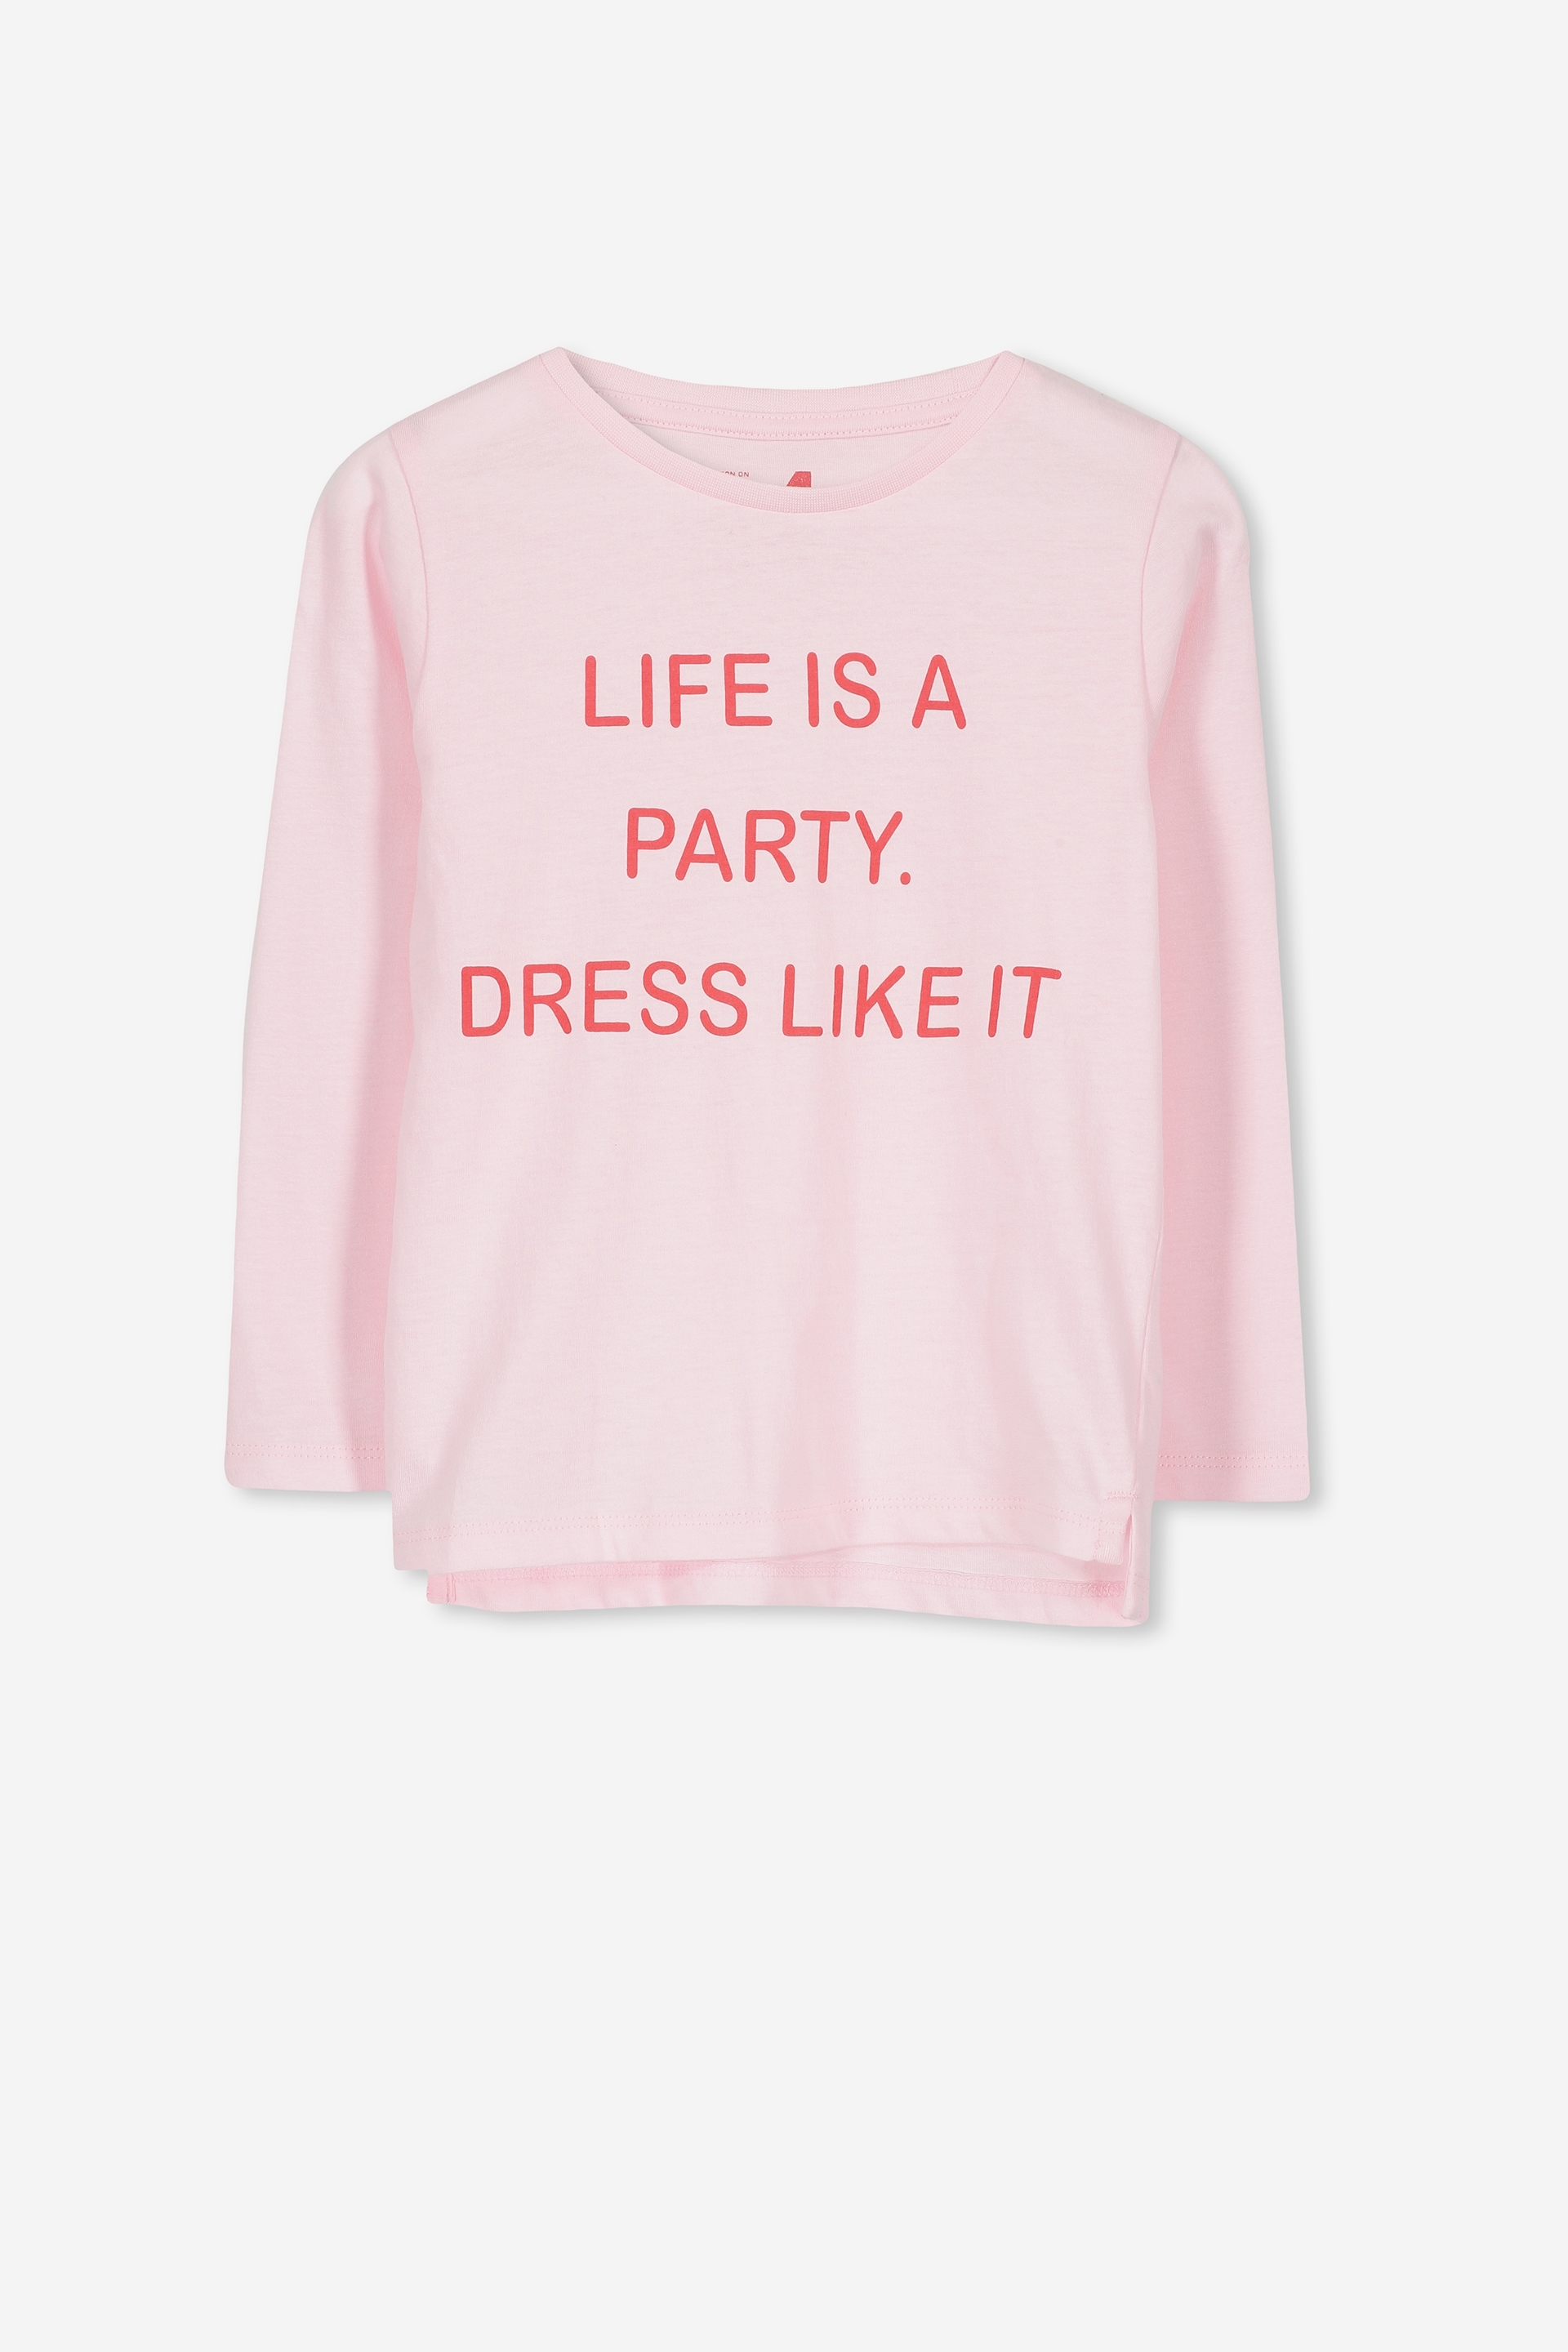 Cotton On Kids  Penelope Long Sleeve Tee  Pinklife is a partyset in